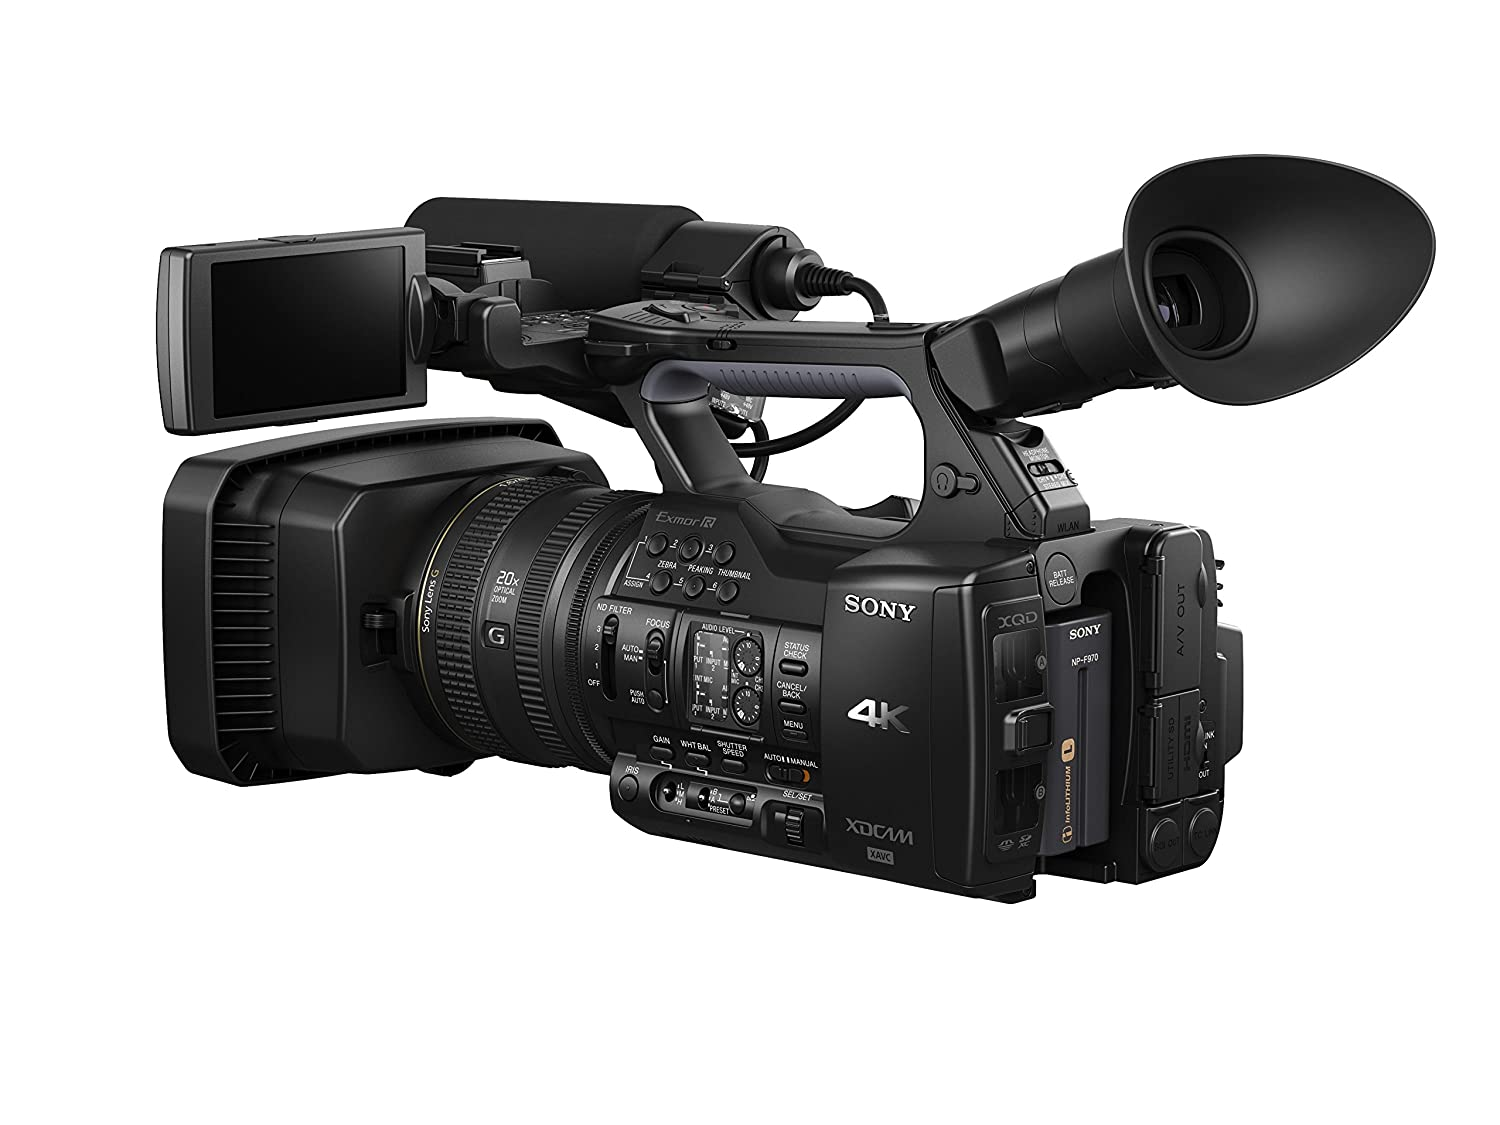 sony 4k. amazon.com : sony pxwz100 4k handheld xdcam memory camcorder (black) camera \u0026 photo 4k